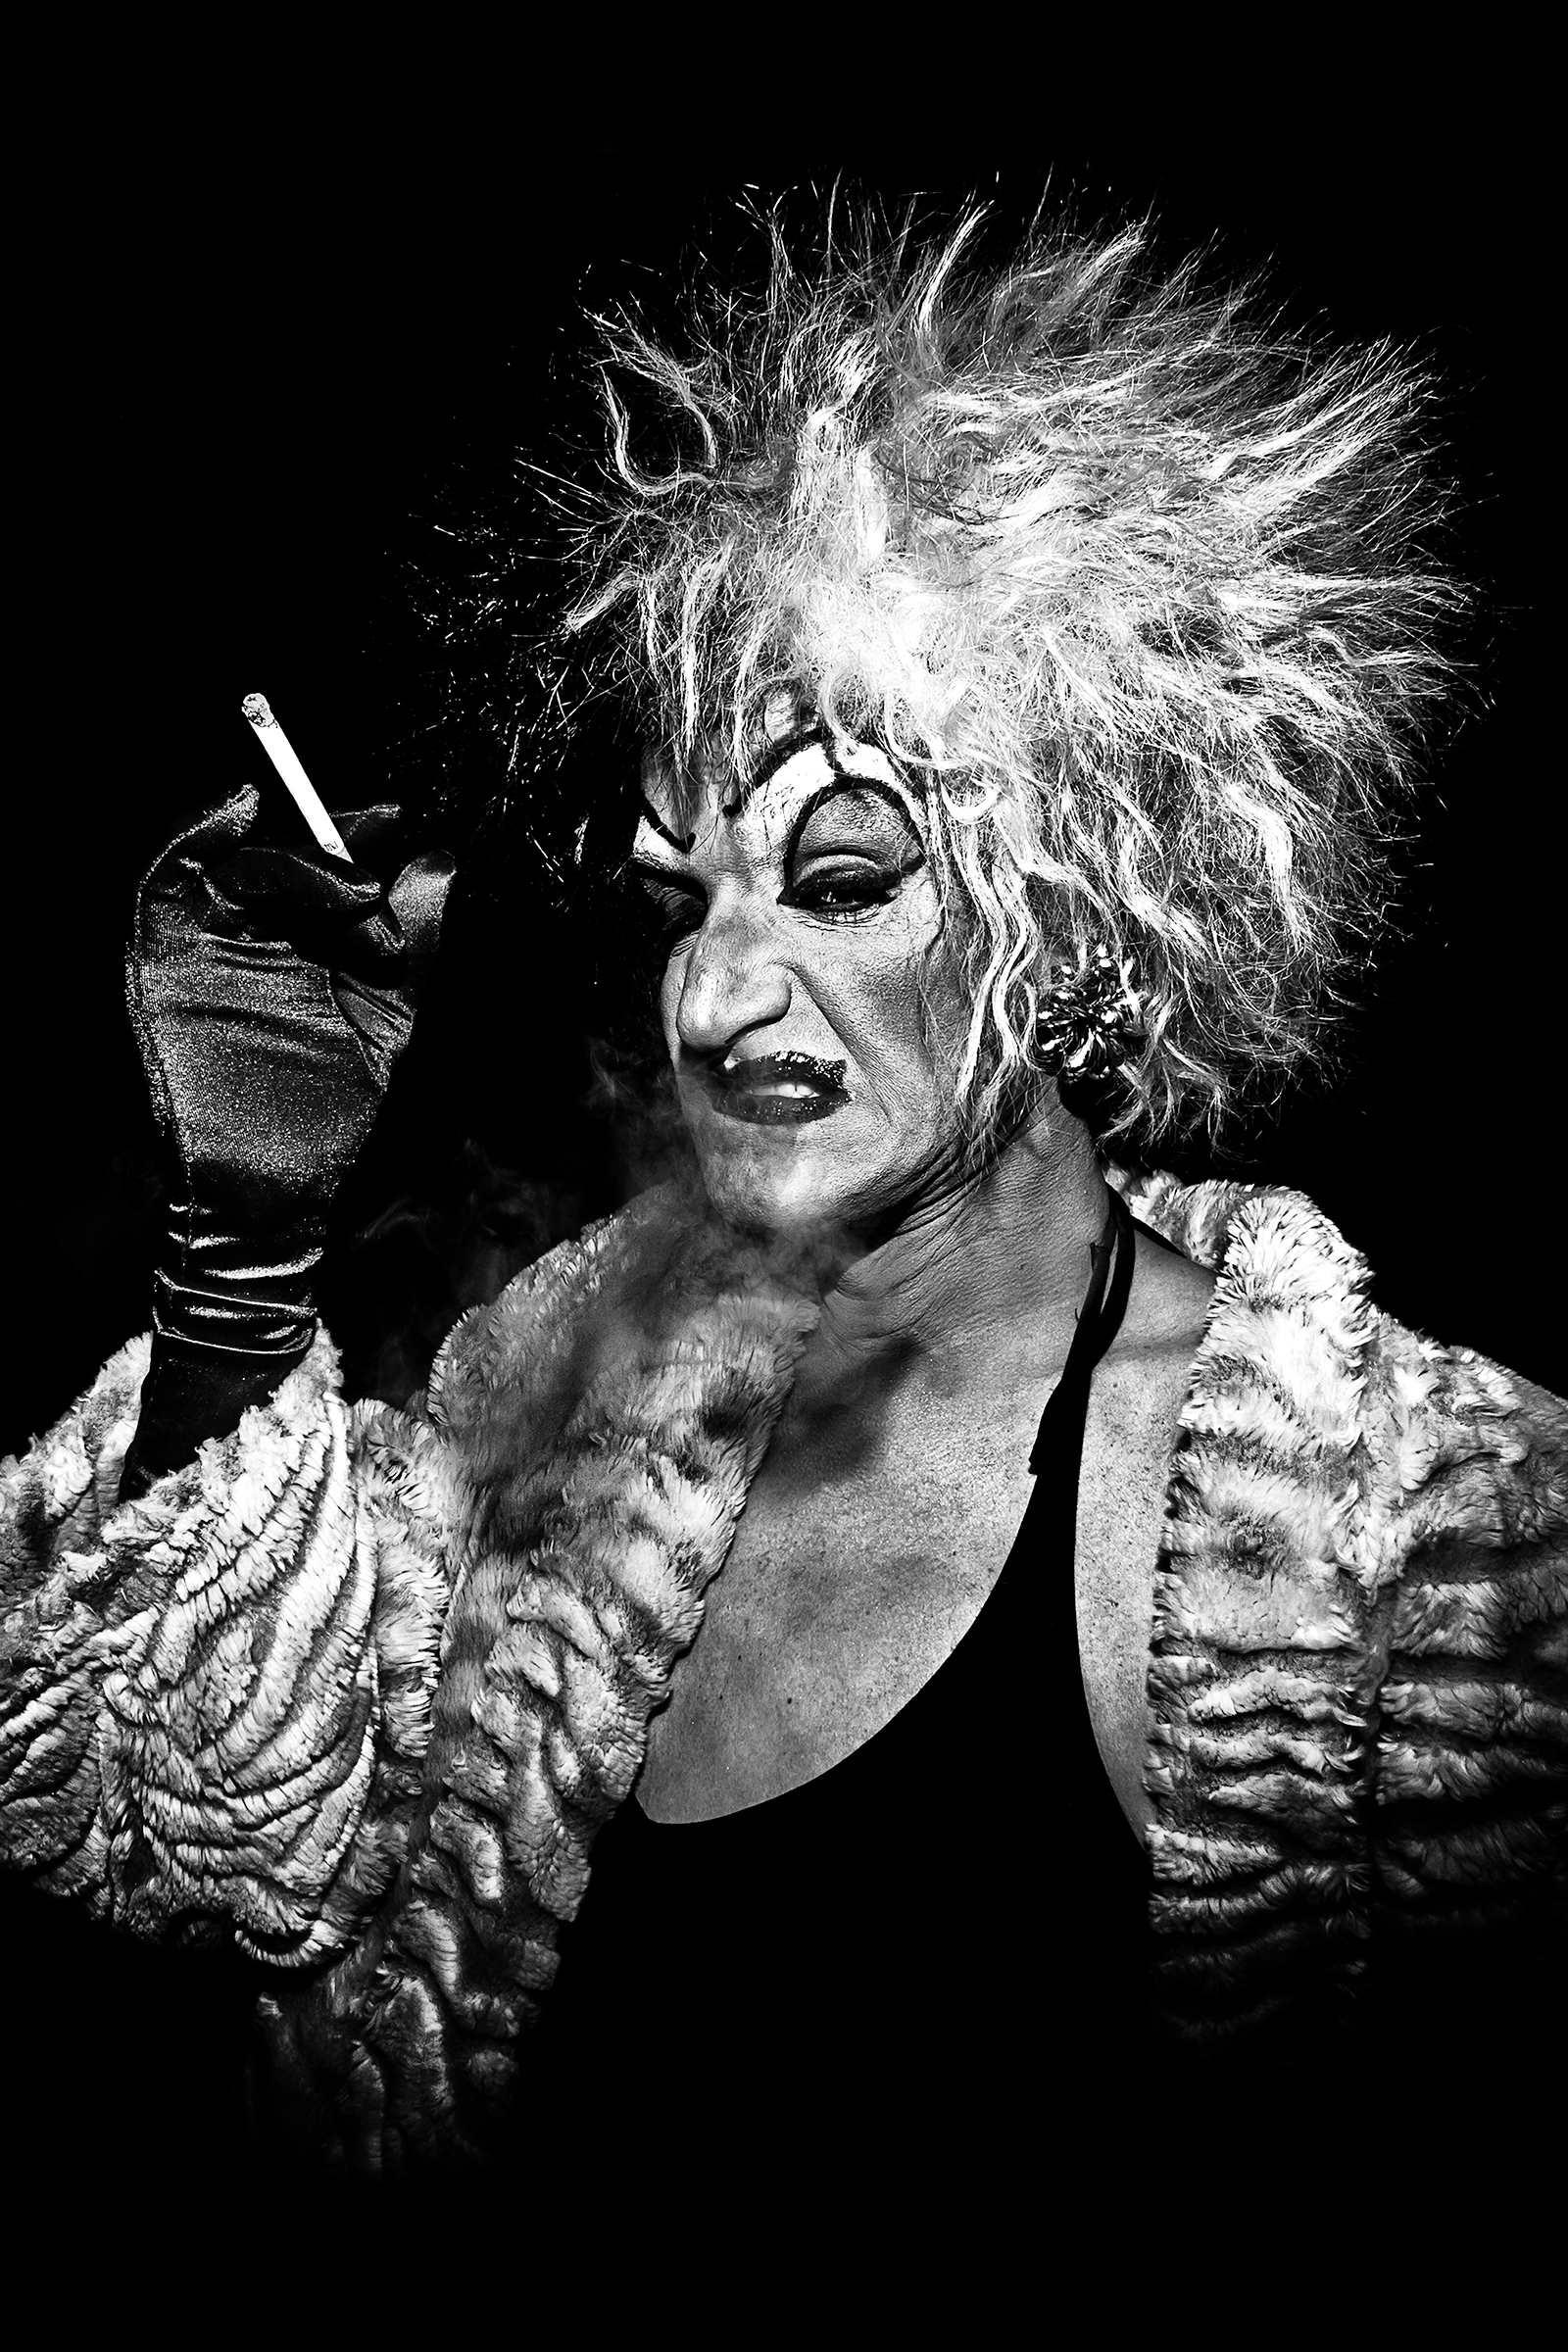 """Local legend Mark """"Mom"""" Finley drags on a cigarette while dressed as Cruella de Vil outside Baltic Room on February 24th, 2012, in Seattle."""